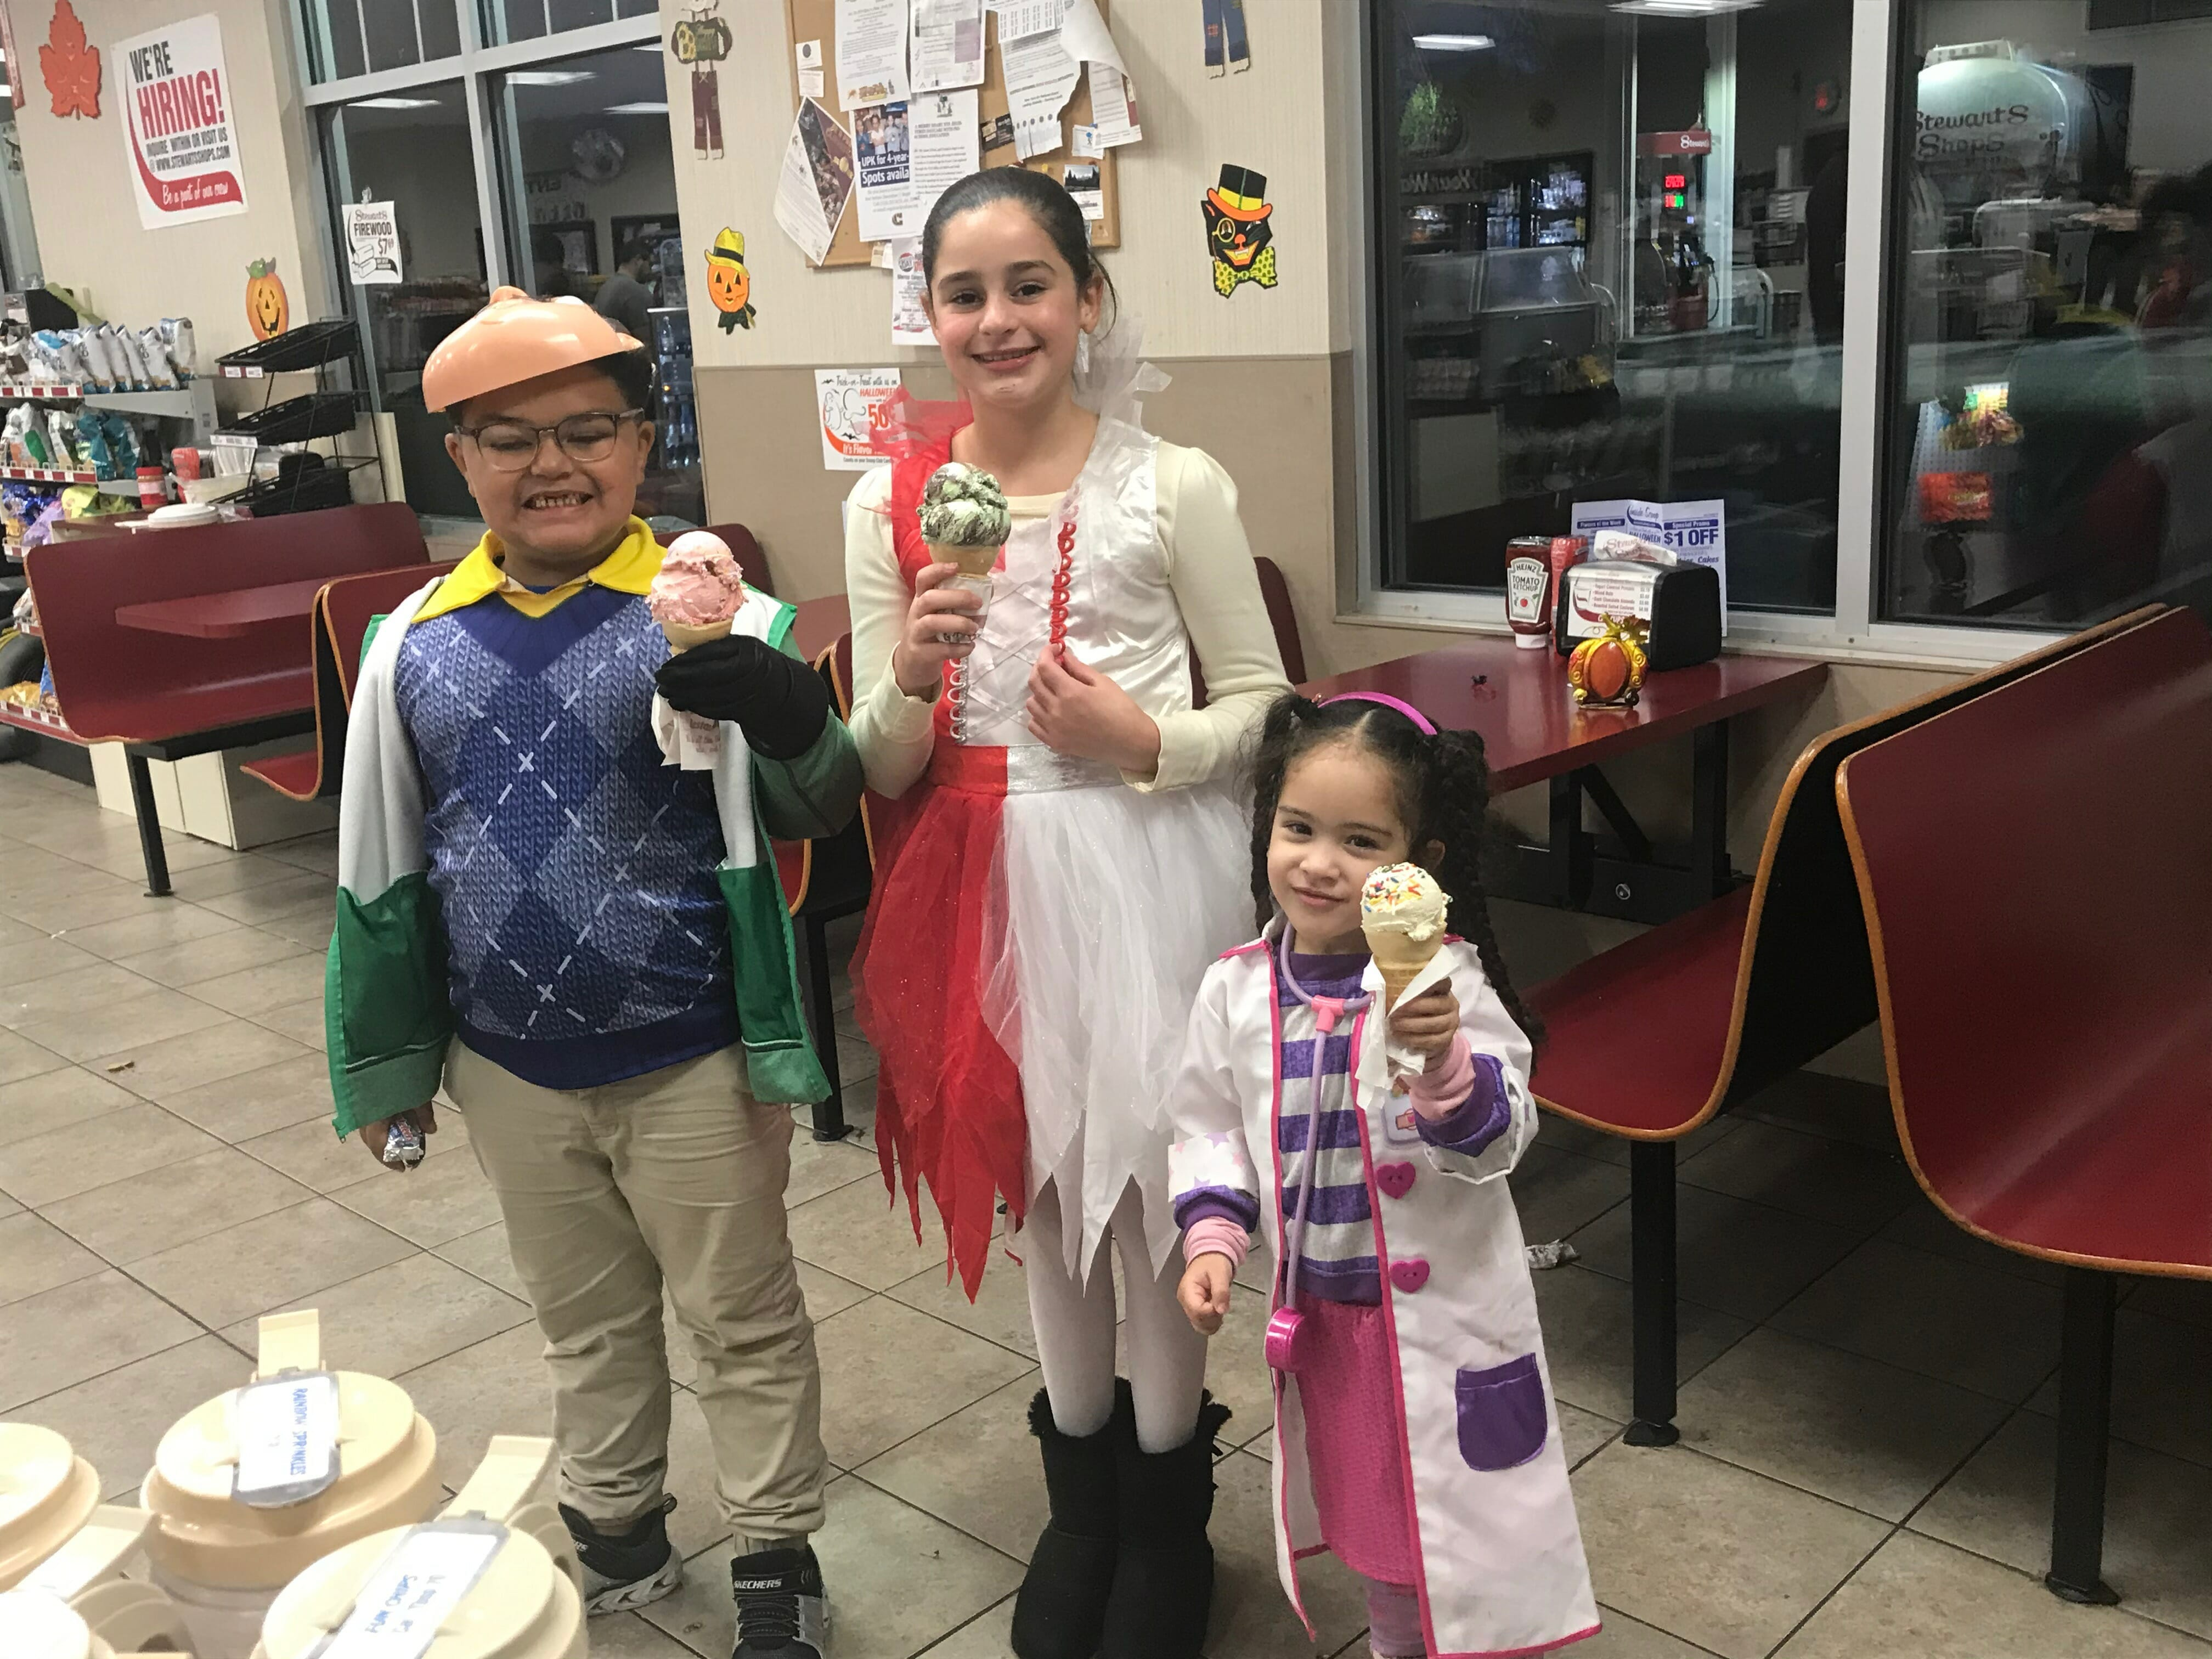 ice cream cones for the little ones at Stewart's